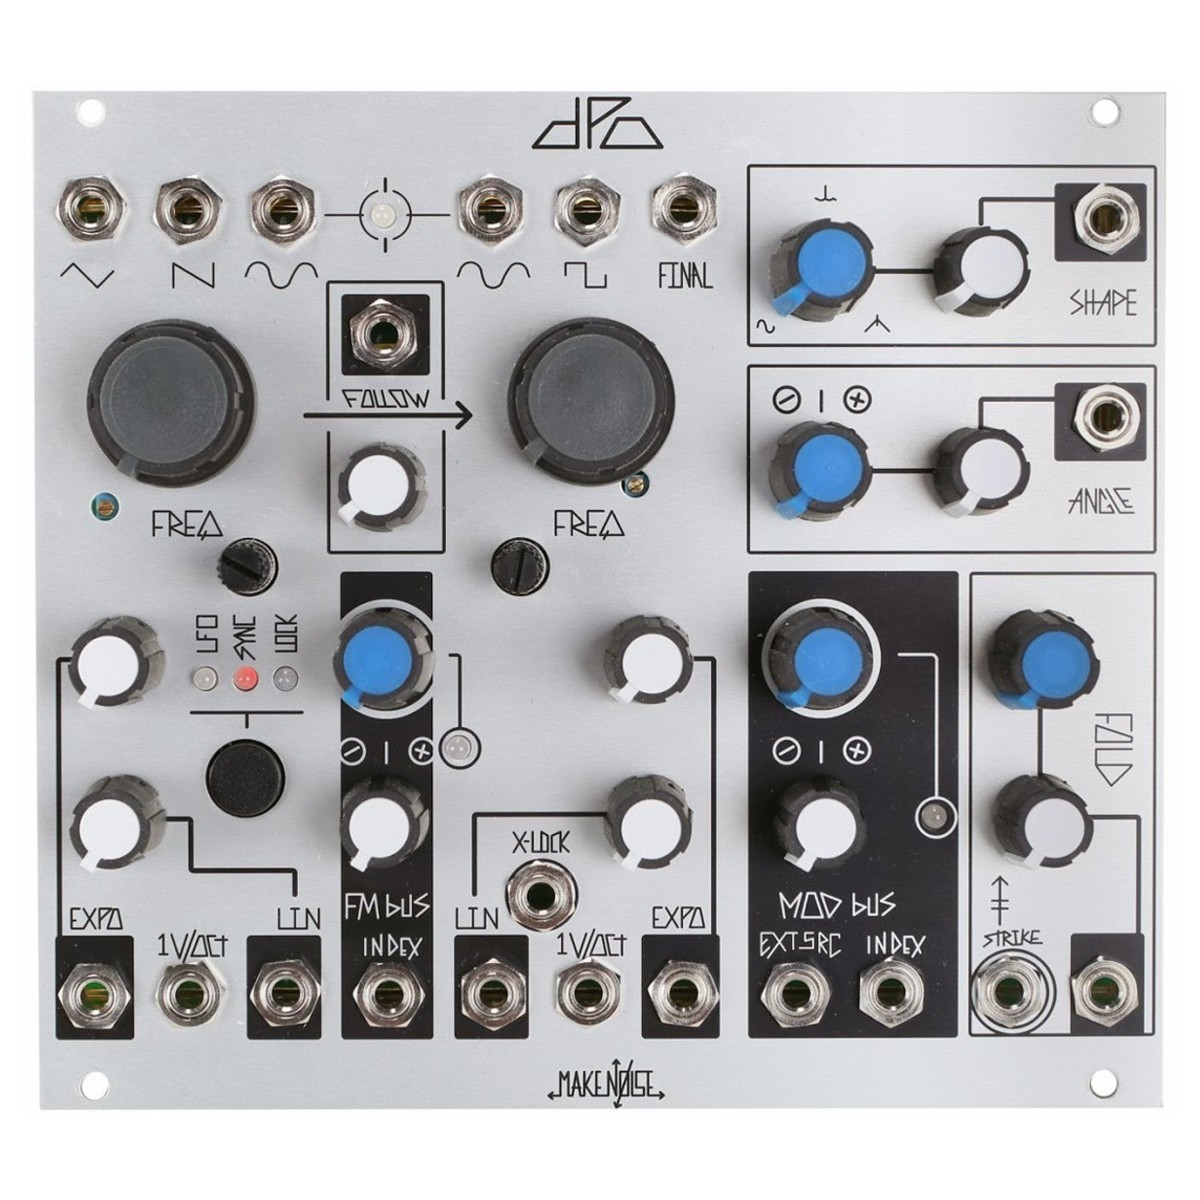 Make Noise Dpo Voltage Controlled Oscillator Box Opened At Gear4music The Vco Circuit That We Will Build Front Loading Zoom